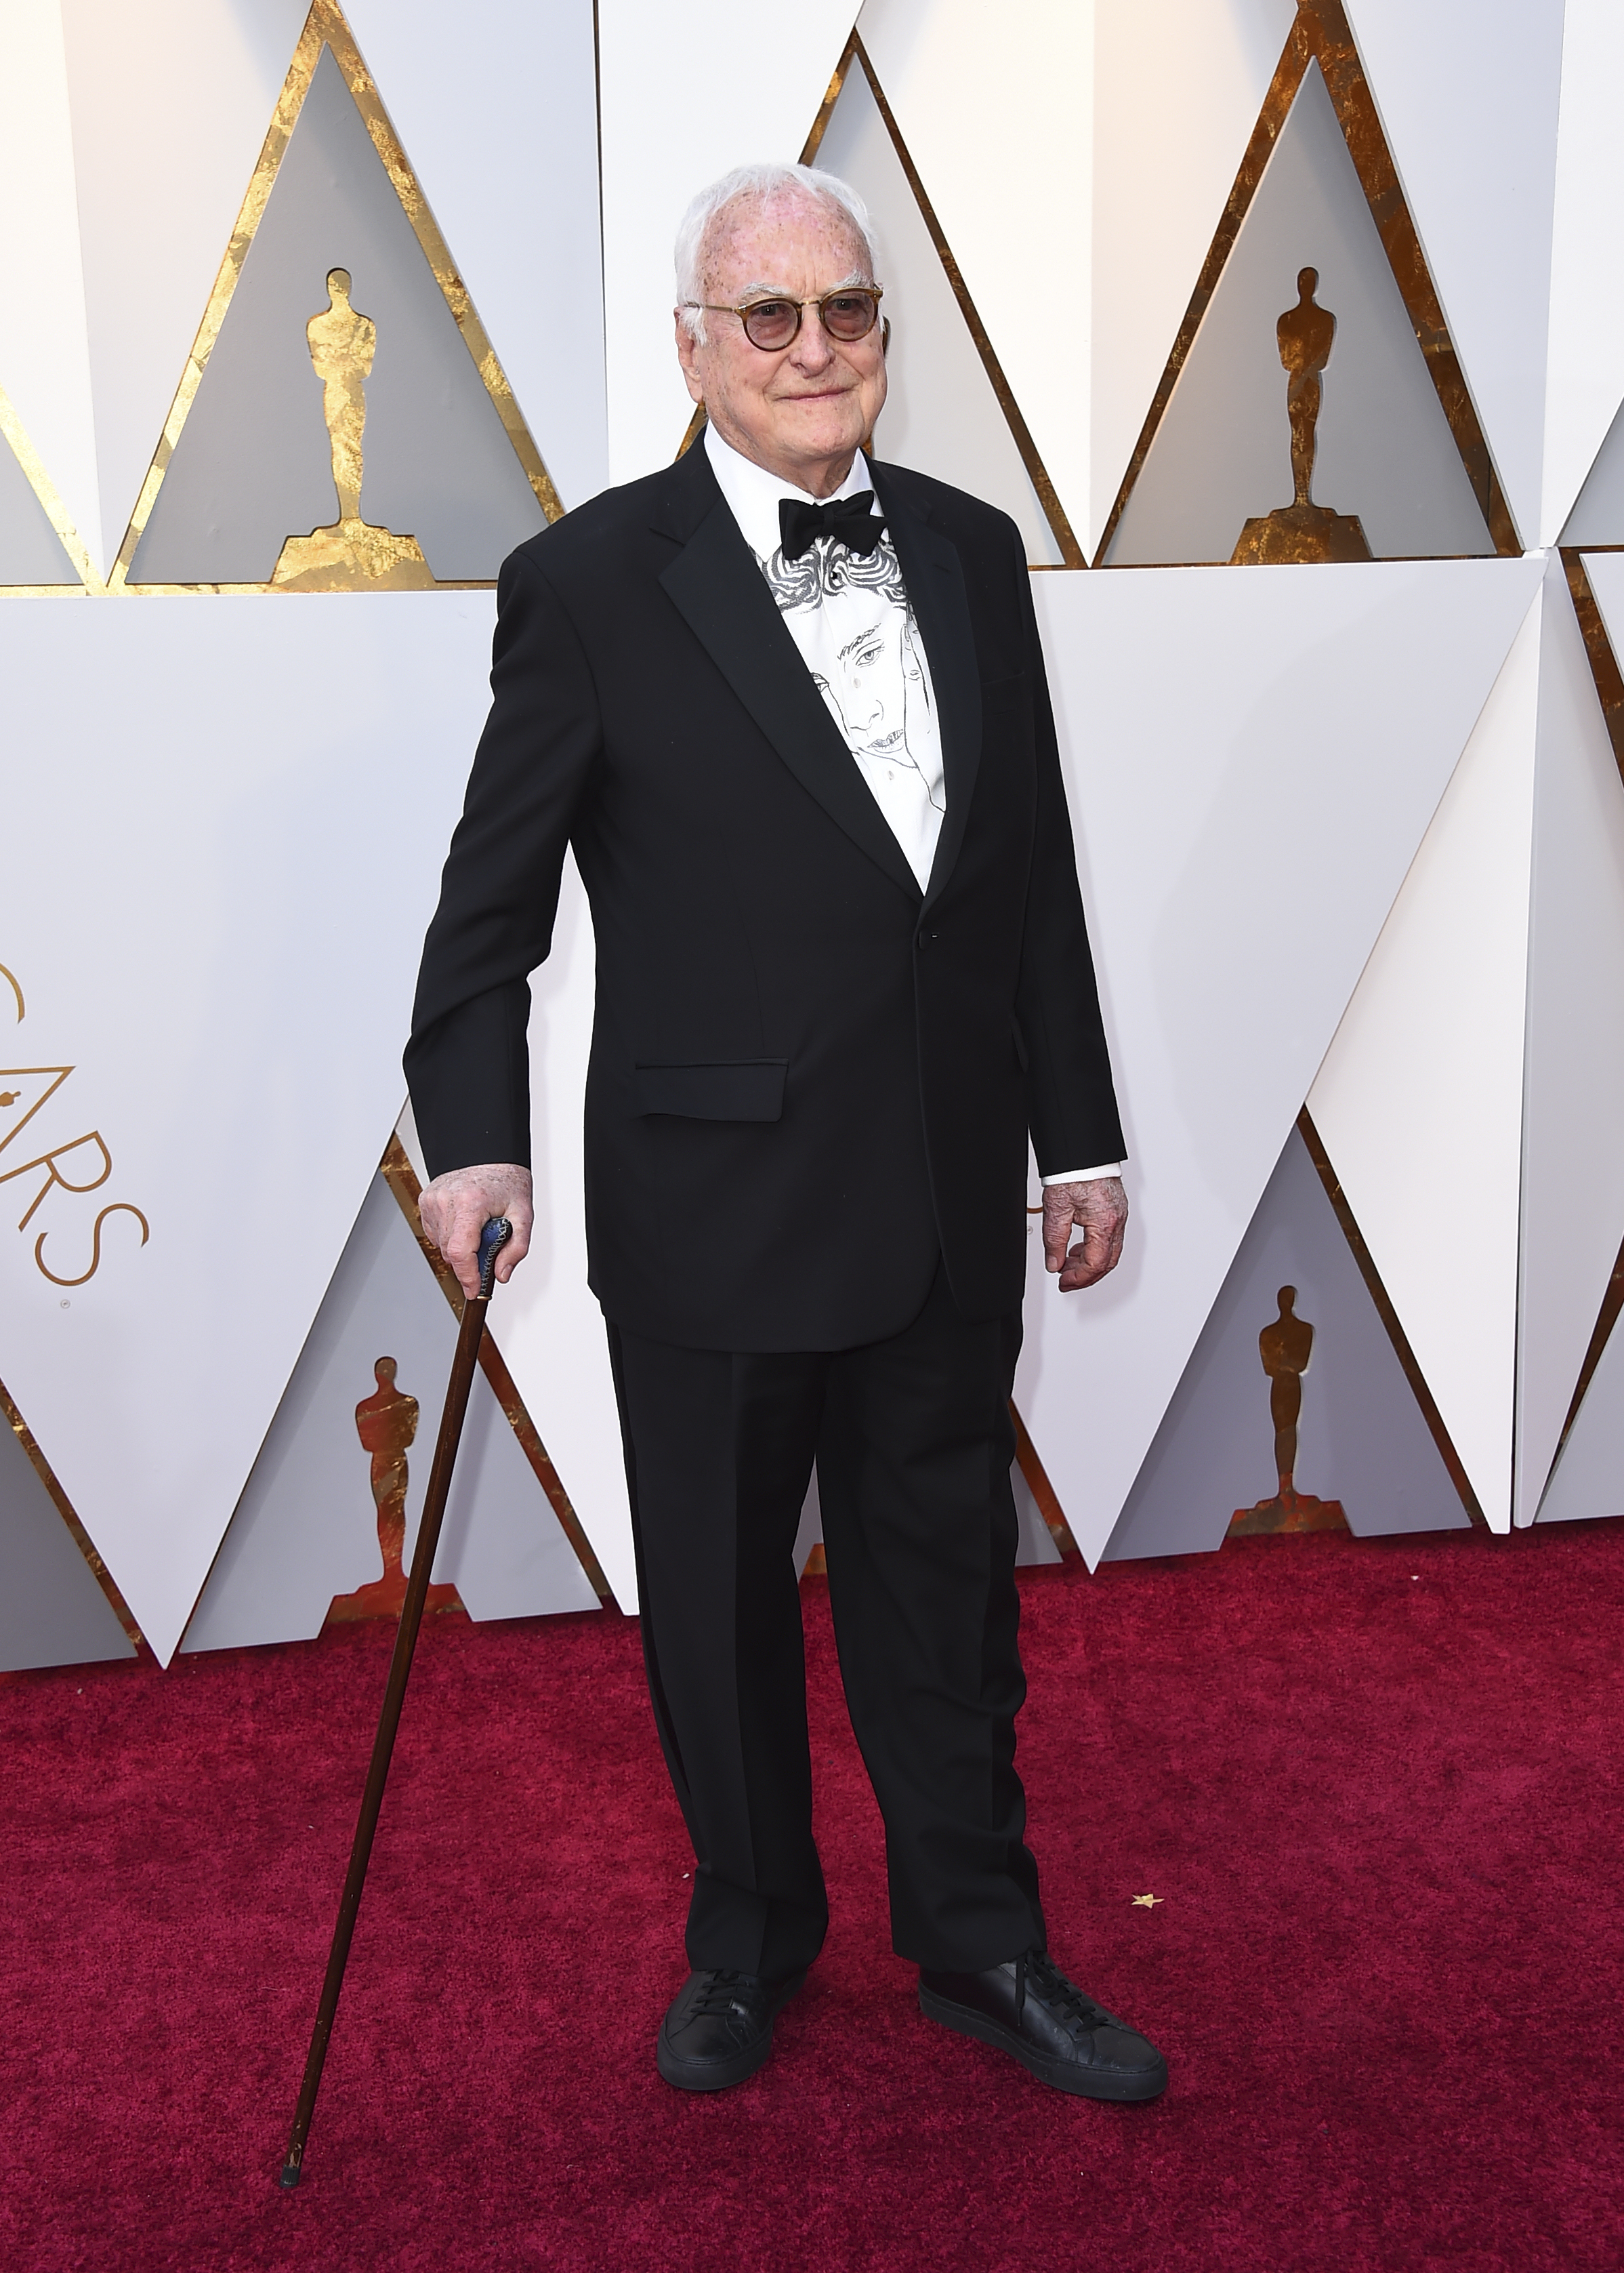 "<div class=""meta image-caption""><div class=""origin-logo origin-image none""><span>none</span></div><span class=""caption-text"">James Ivory arrives at the Oscars on Sunday, March 4, 2018, at the Dolby Theatre in Los Angeles. (Jordan Strauss/Invision/AP)</span></div>"